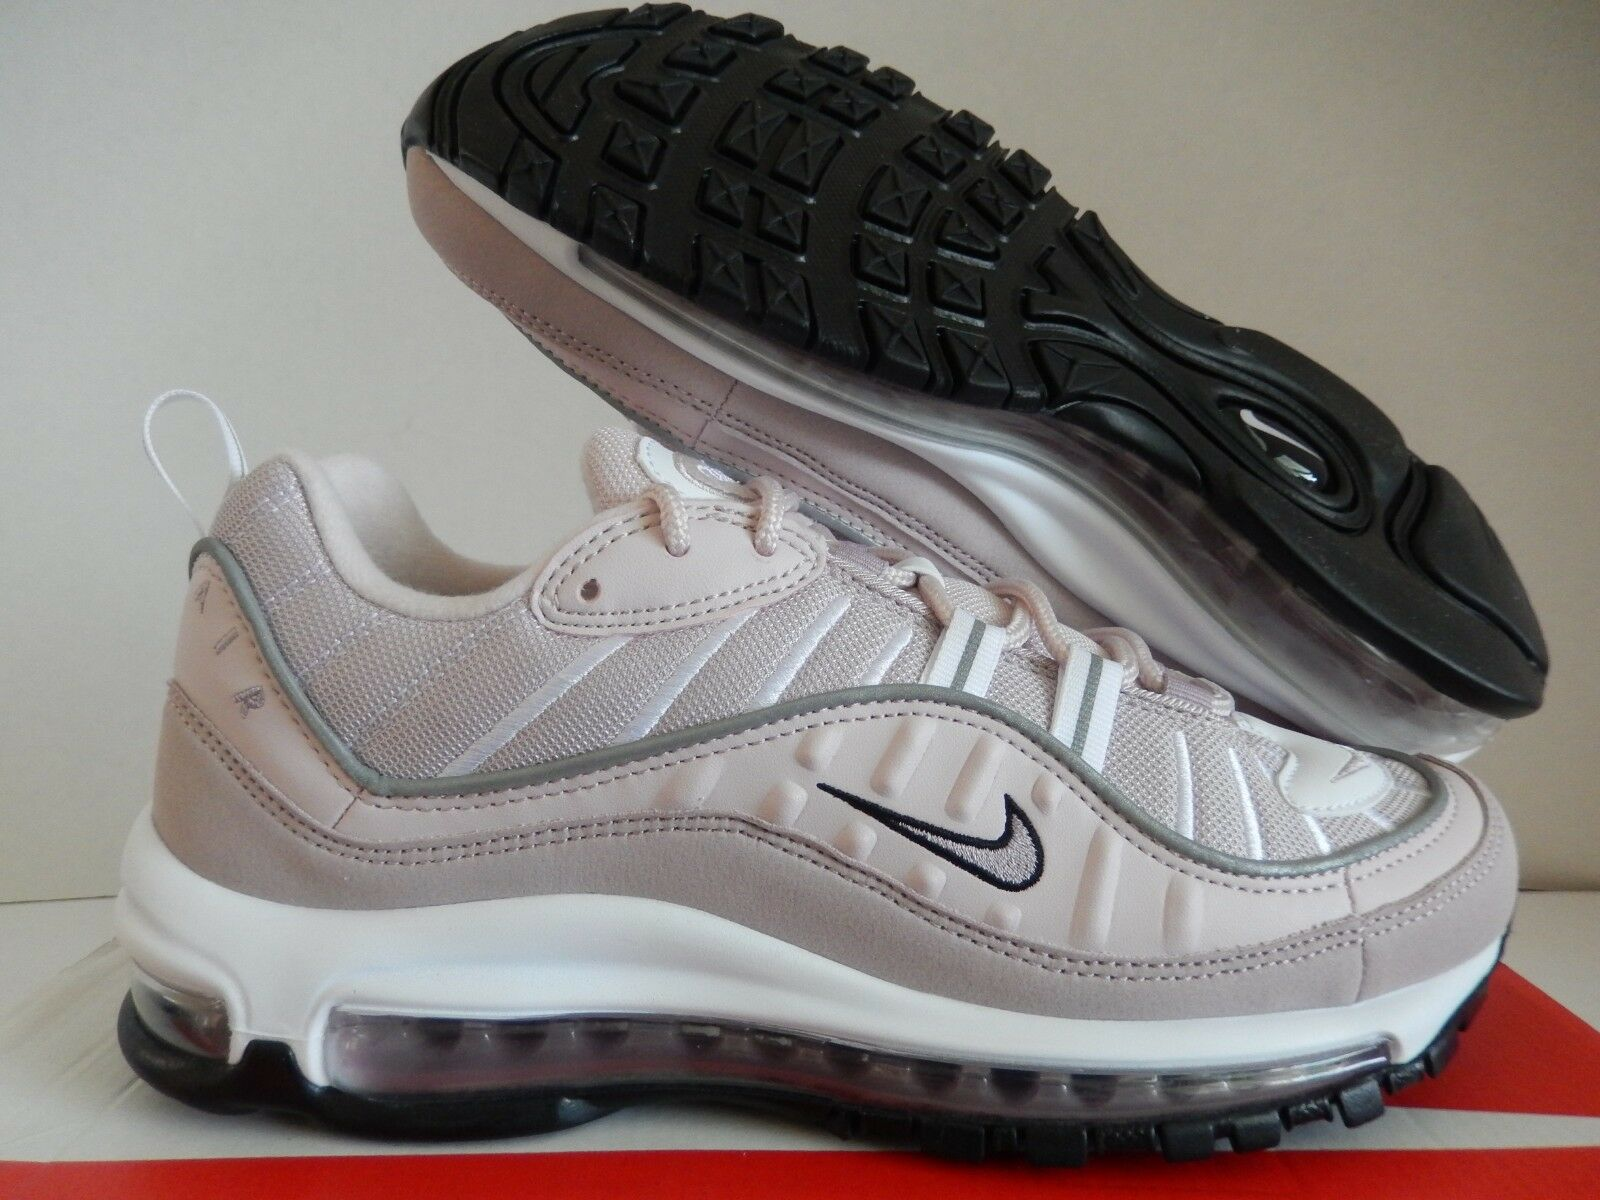 WMNS NIKE AIR MAX 98 BARELY ROSE PINK-ELEMENTAL ROSE SZ 9 [AH6799-600]